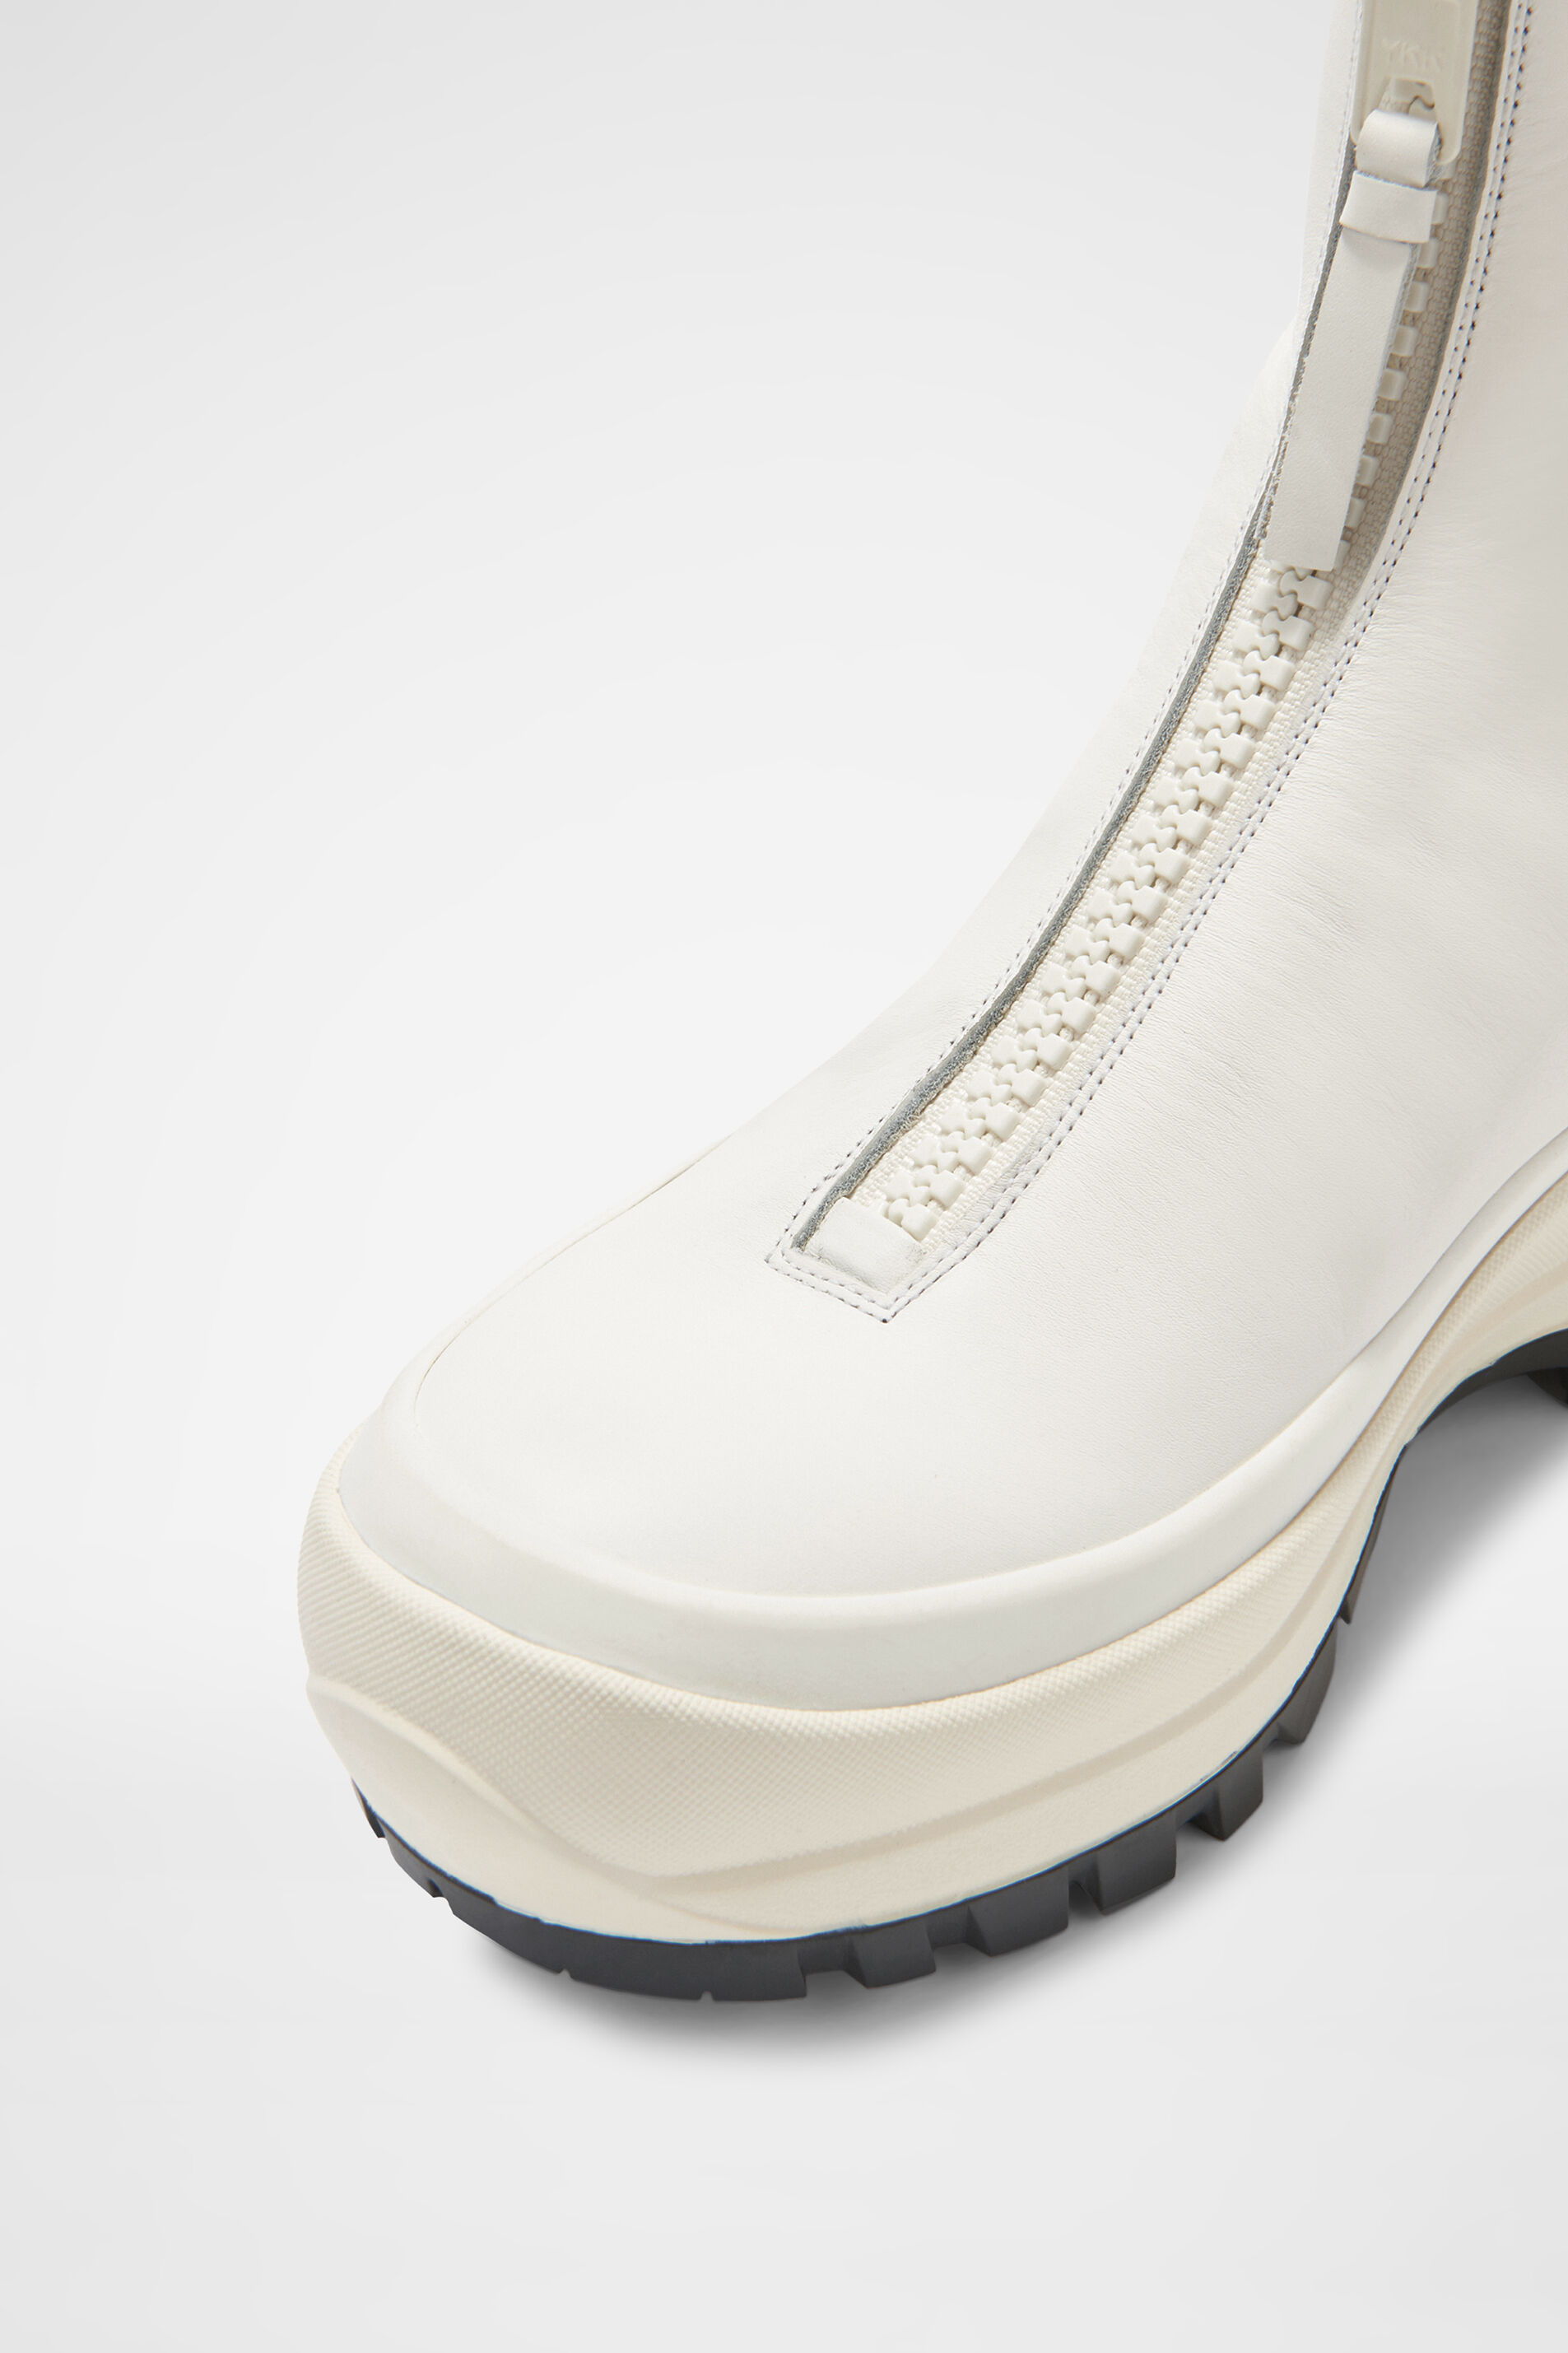 Zip-up Boots, white, large